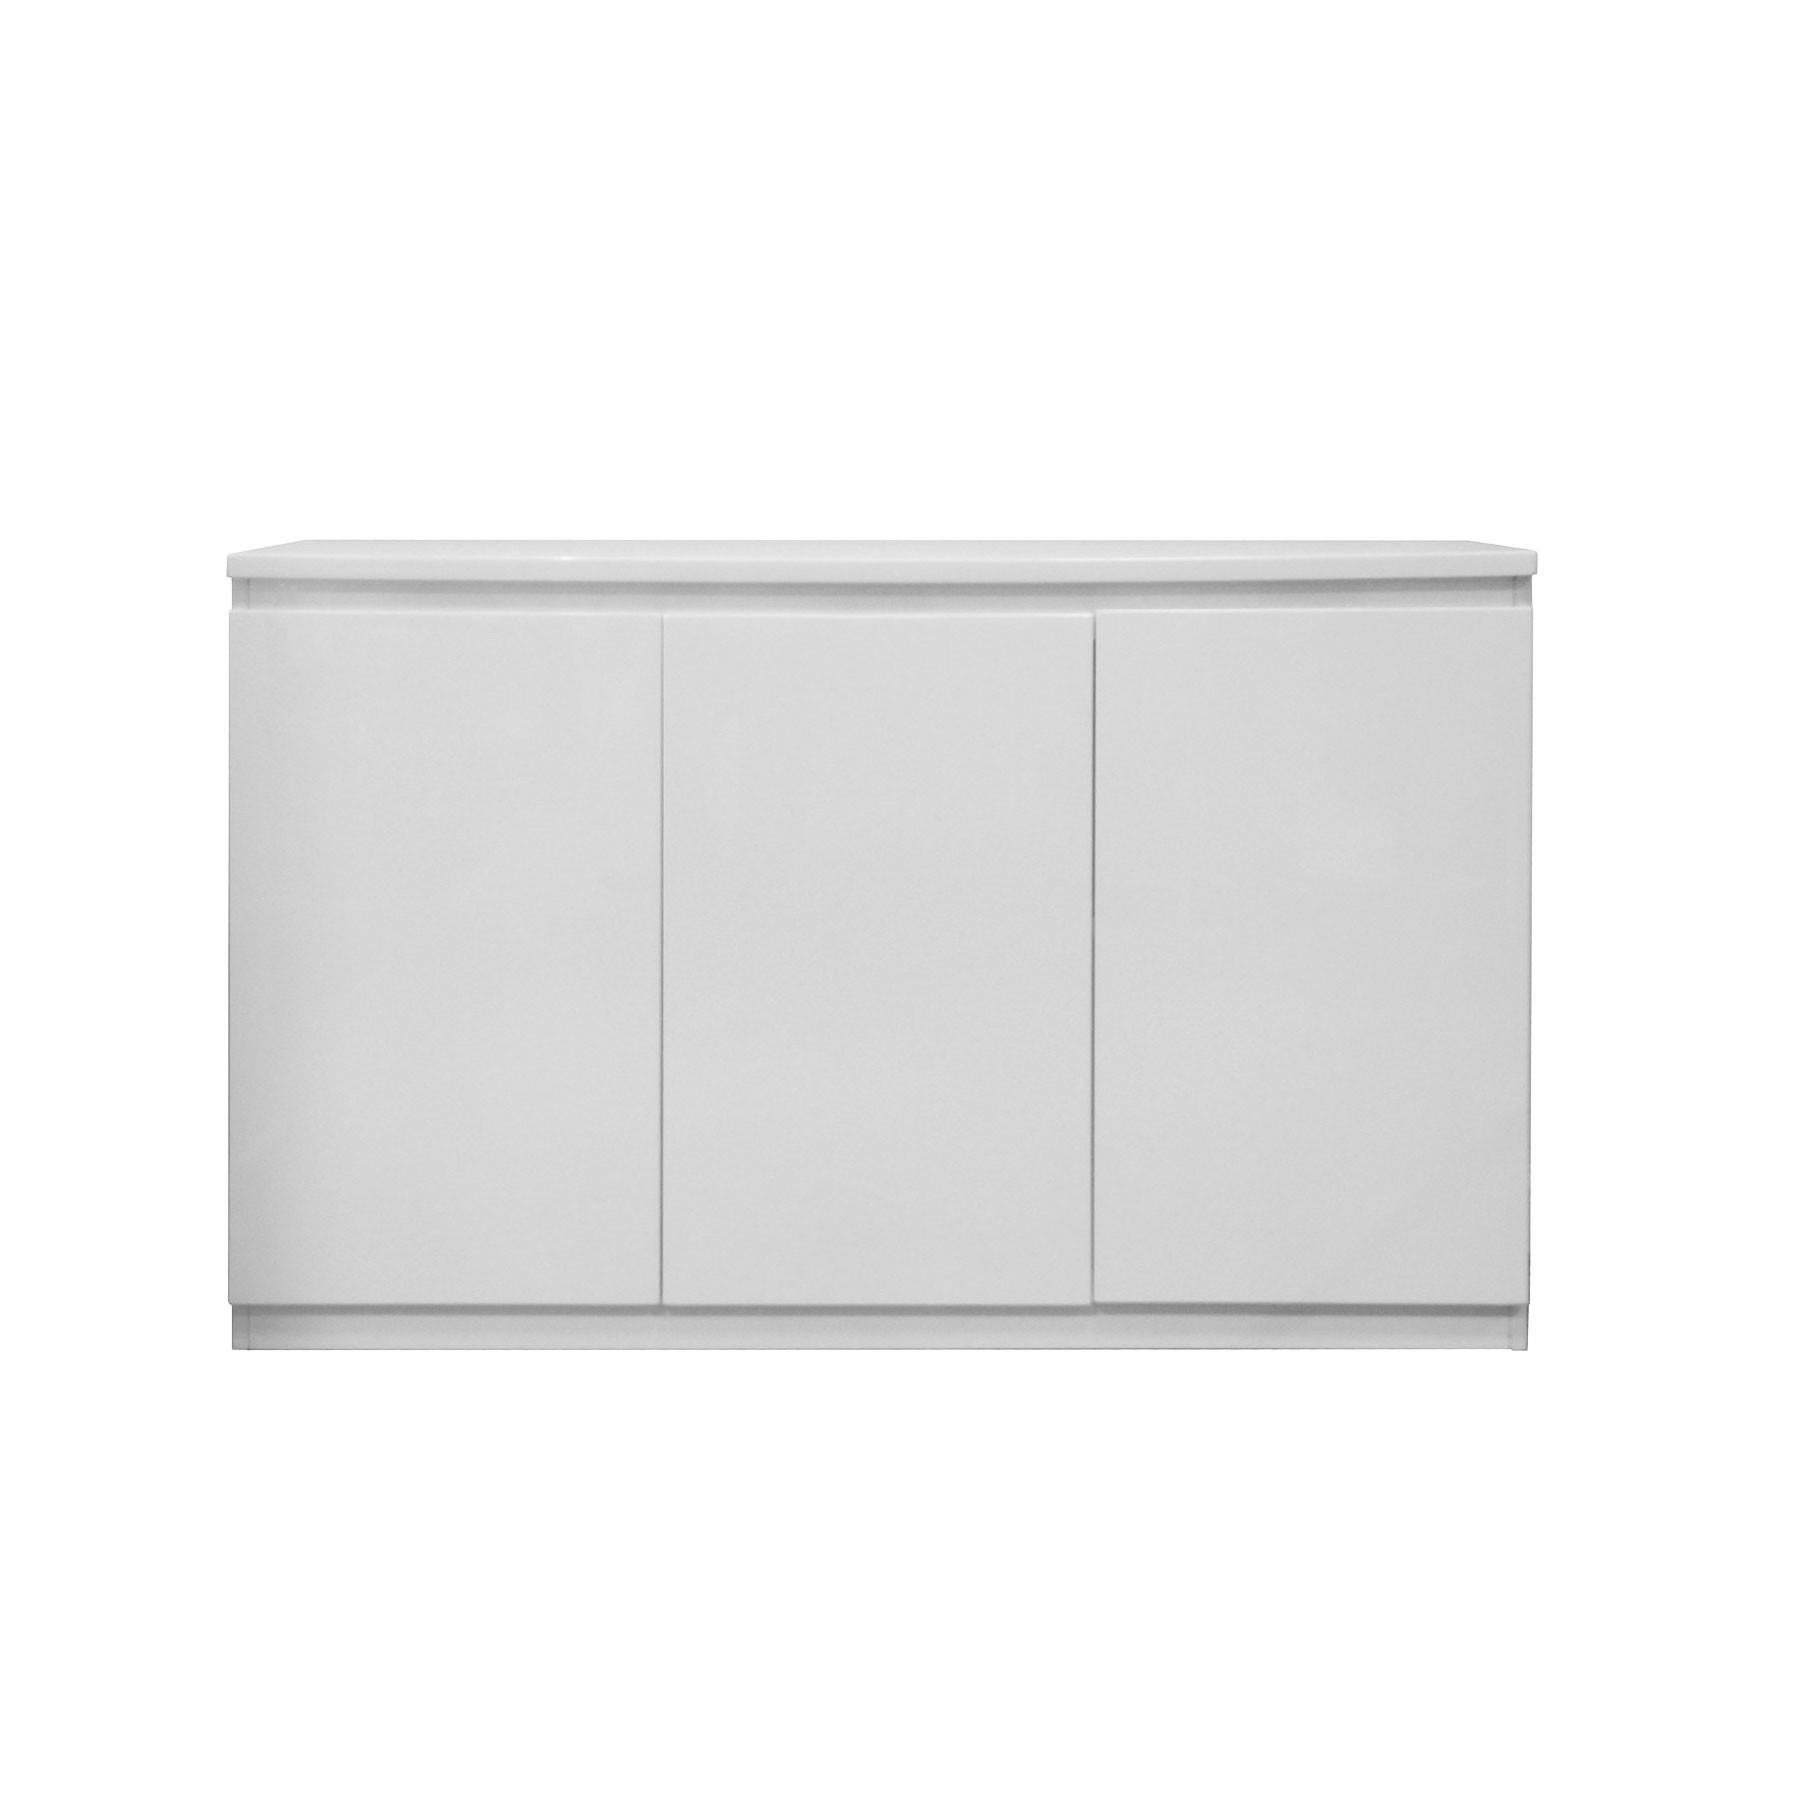 Famous White Wash 3 Door 3 Drawer Sideboards Intended For Vigo High Gloss White 3 Door Sideboard (Gallery 14 of 20)